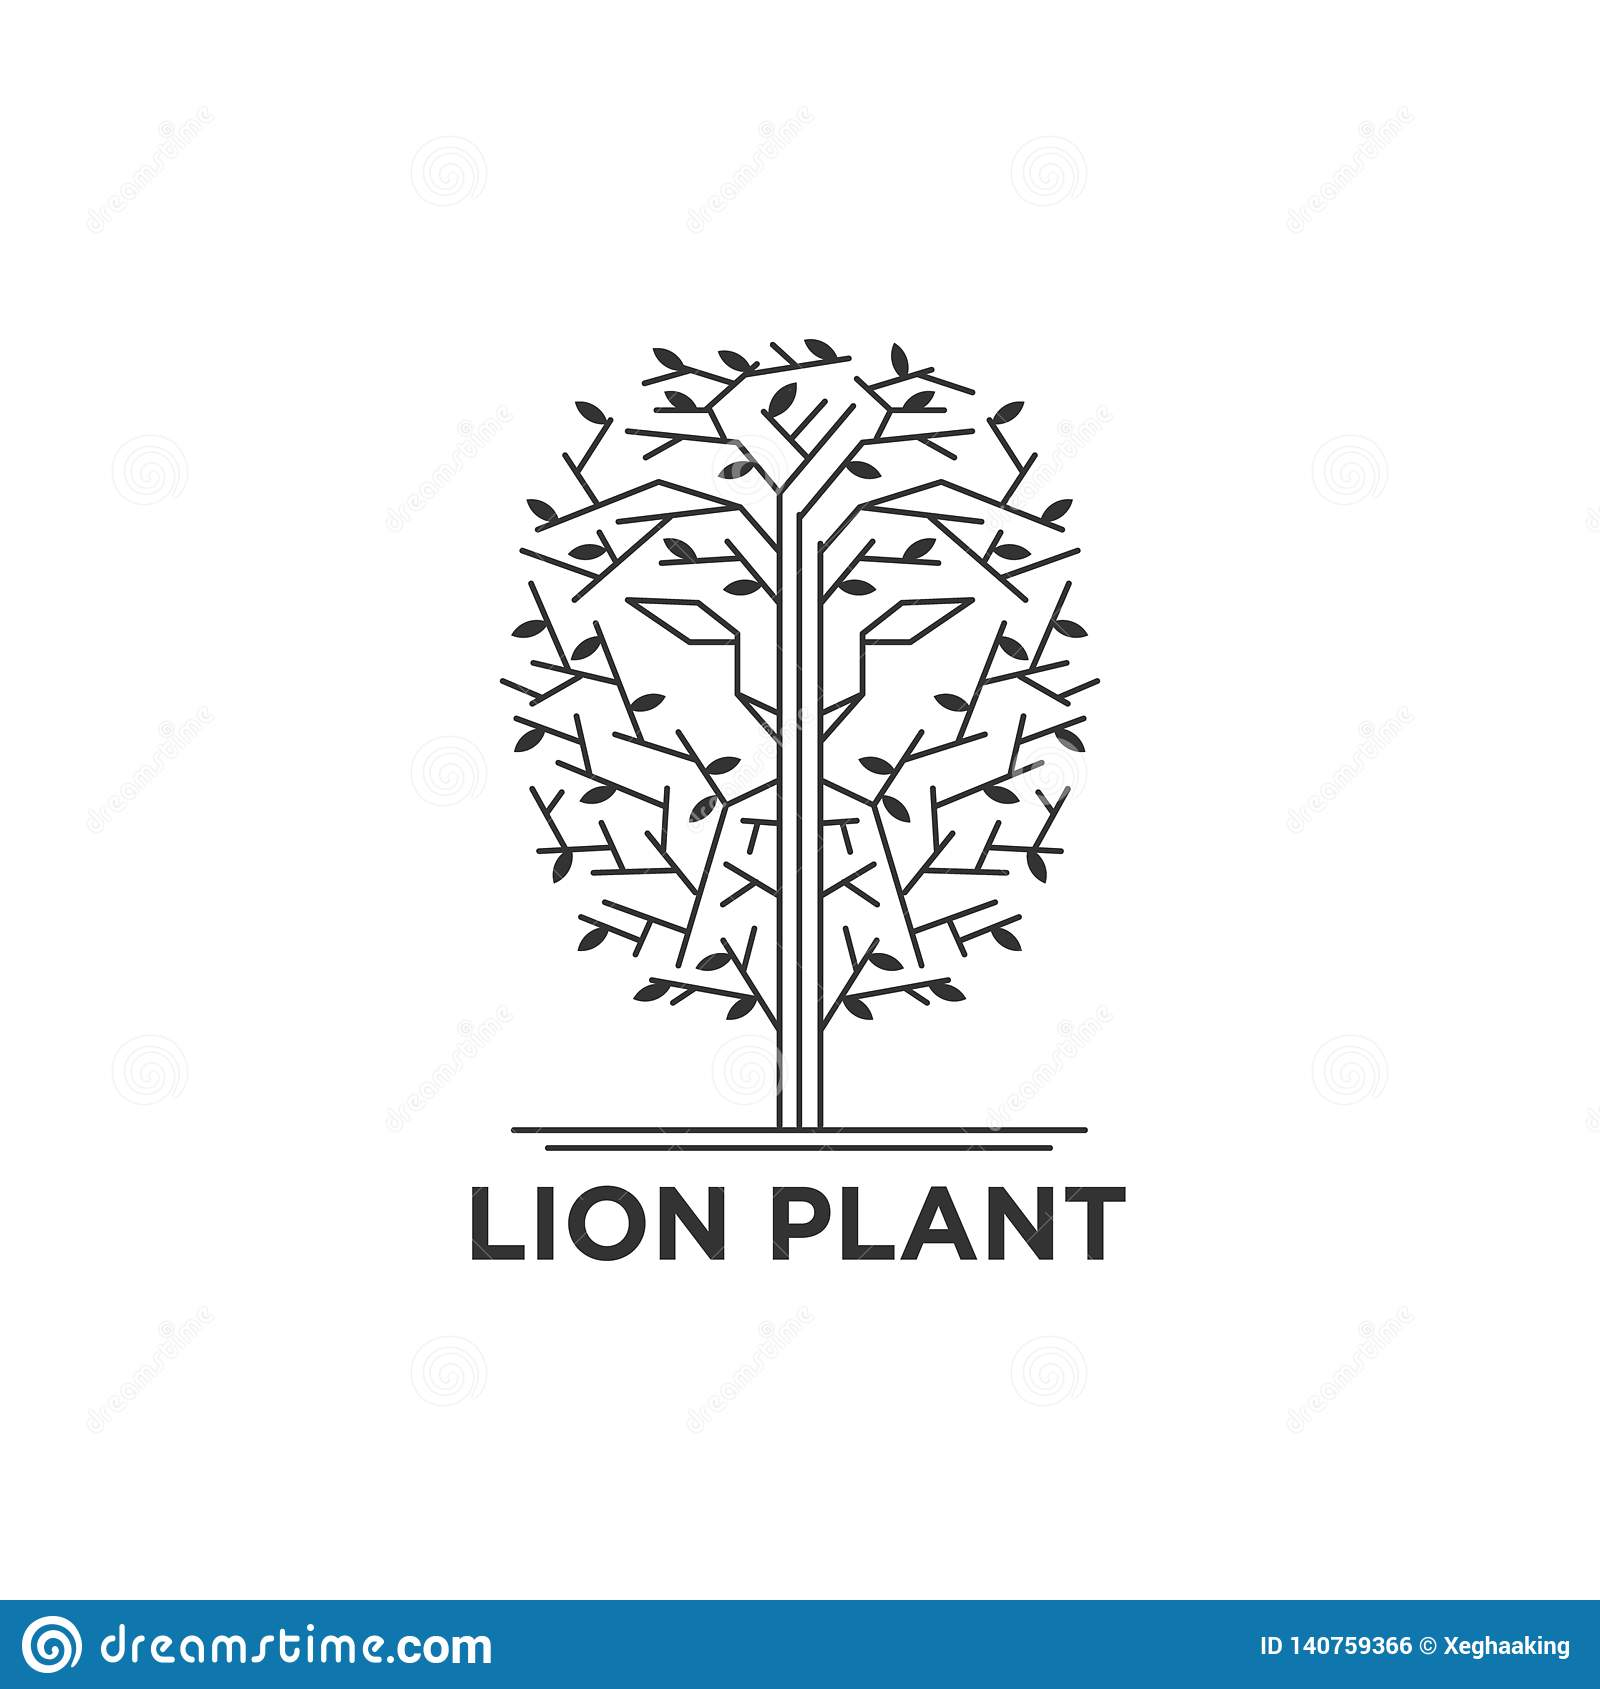 Lion face in the trees logo